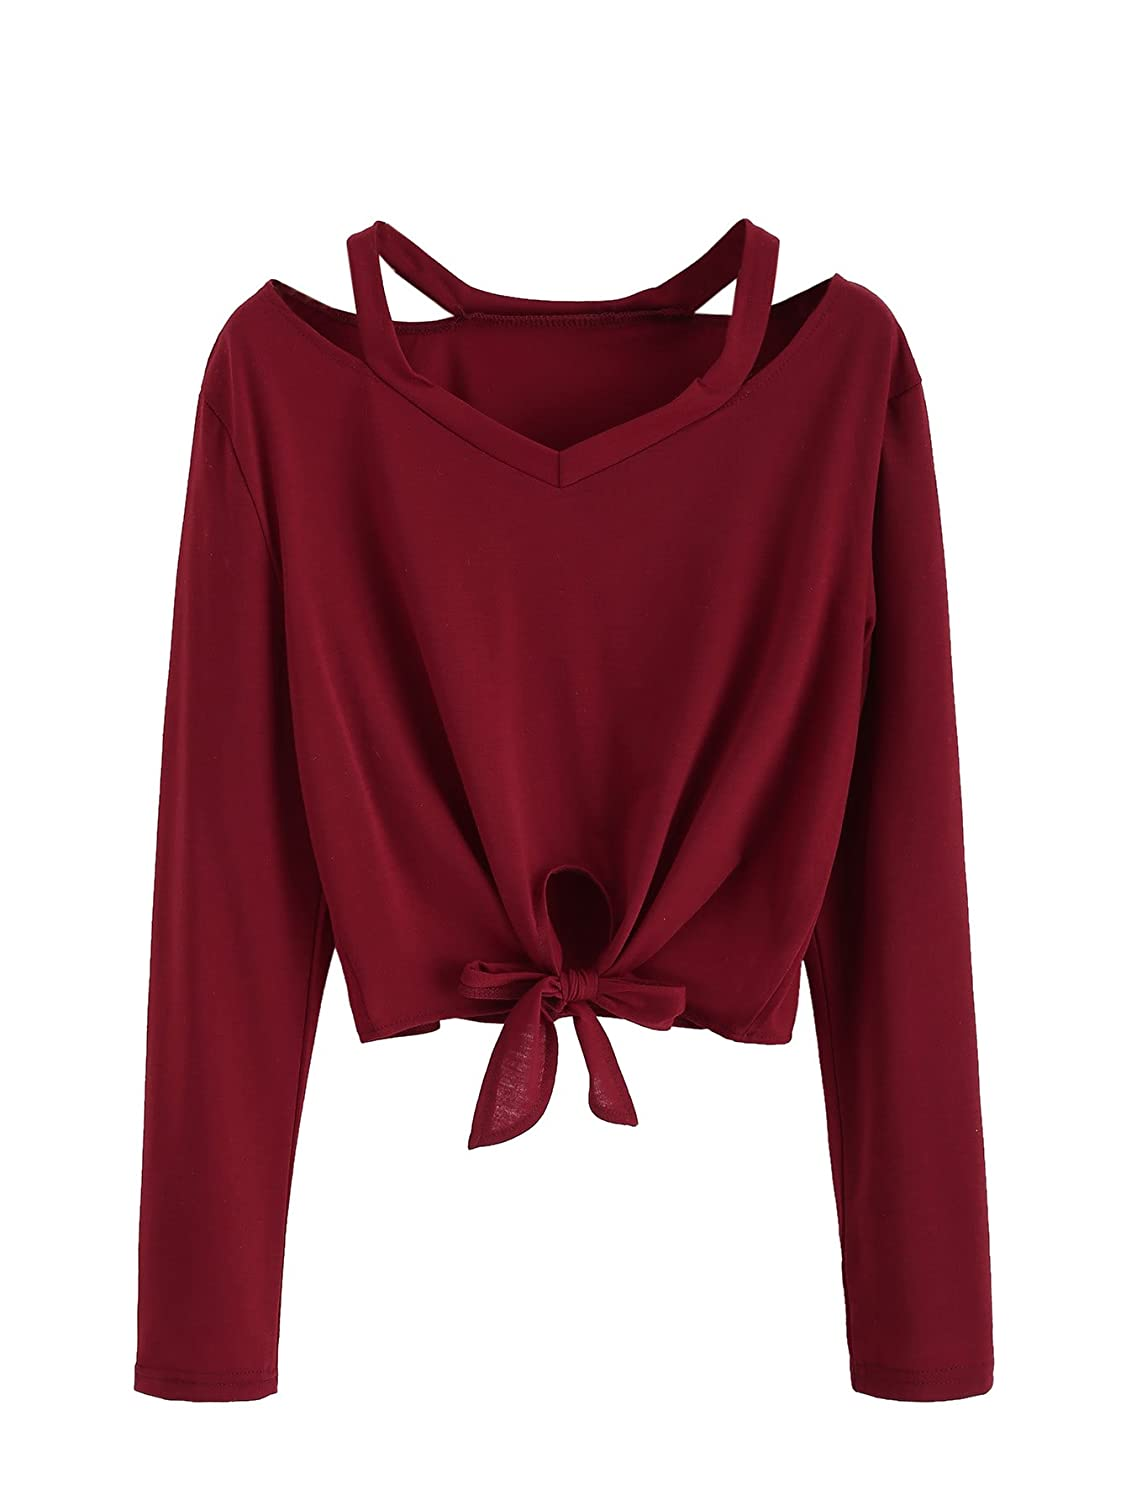 Burgundy SweatyRocks Women's Crop TShirt Tie Front Long Sleeve Cut Out Casual Blouse Top